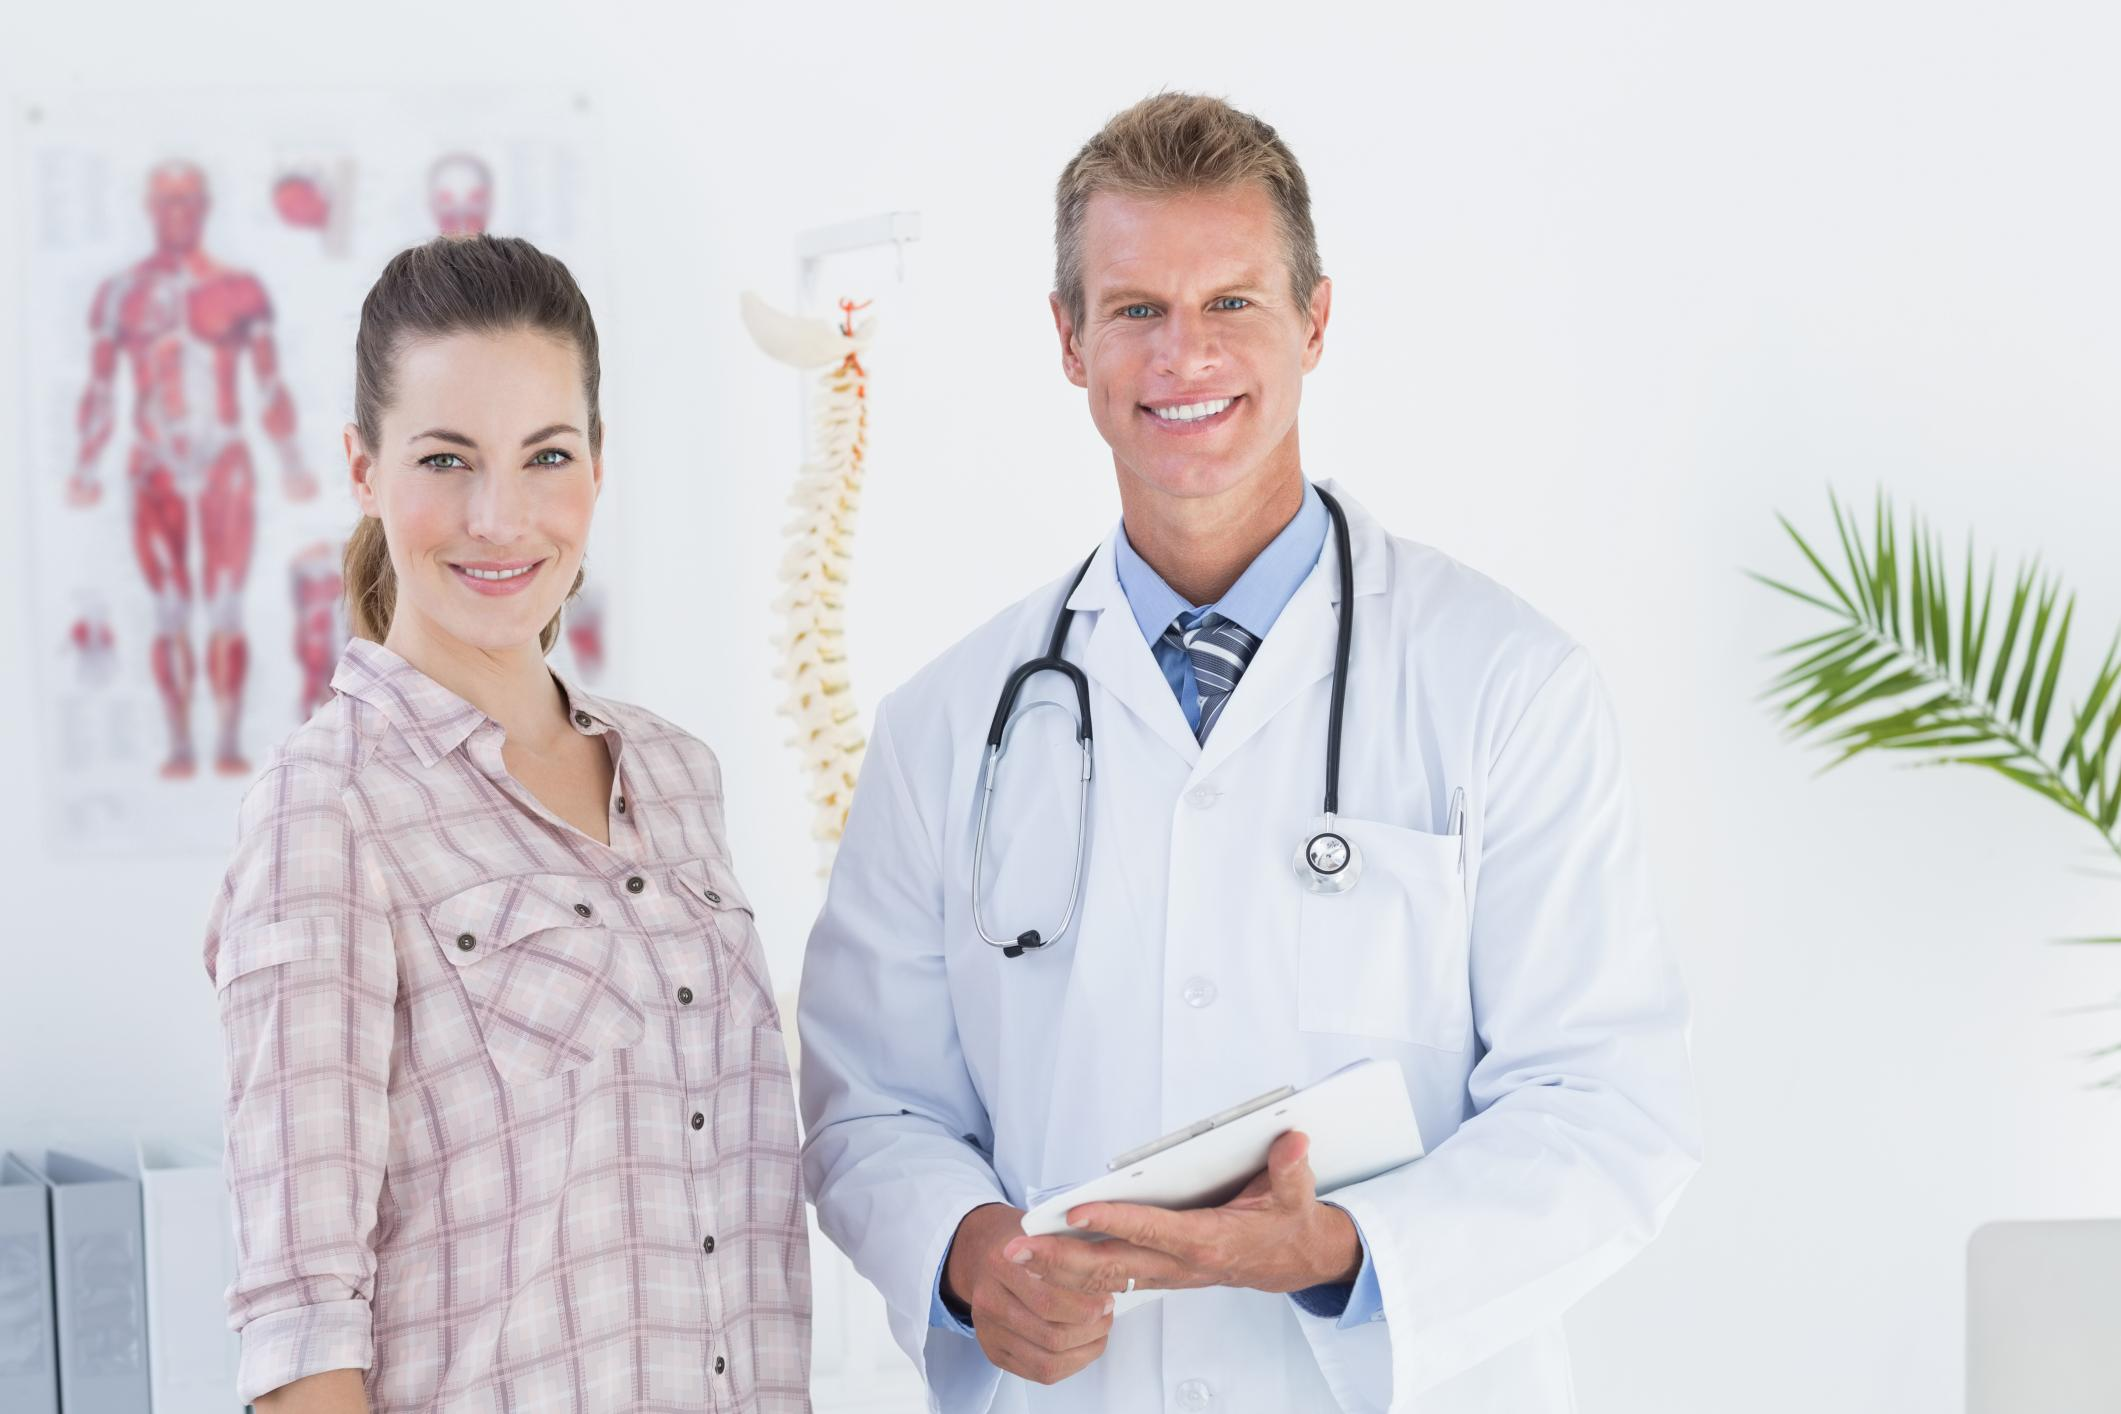 Spinal Adjustments and Chiropractic Services - About